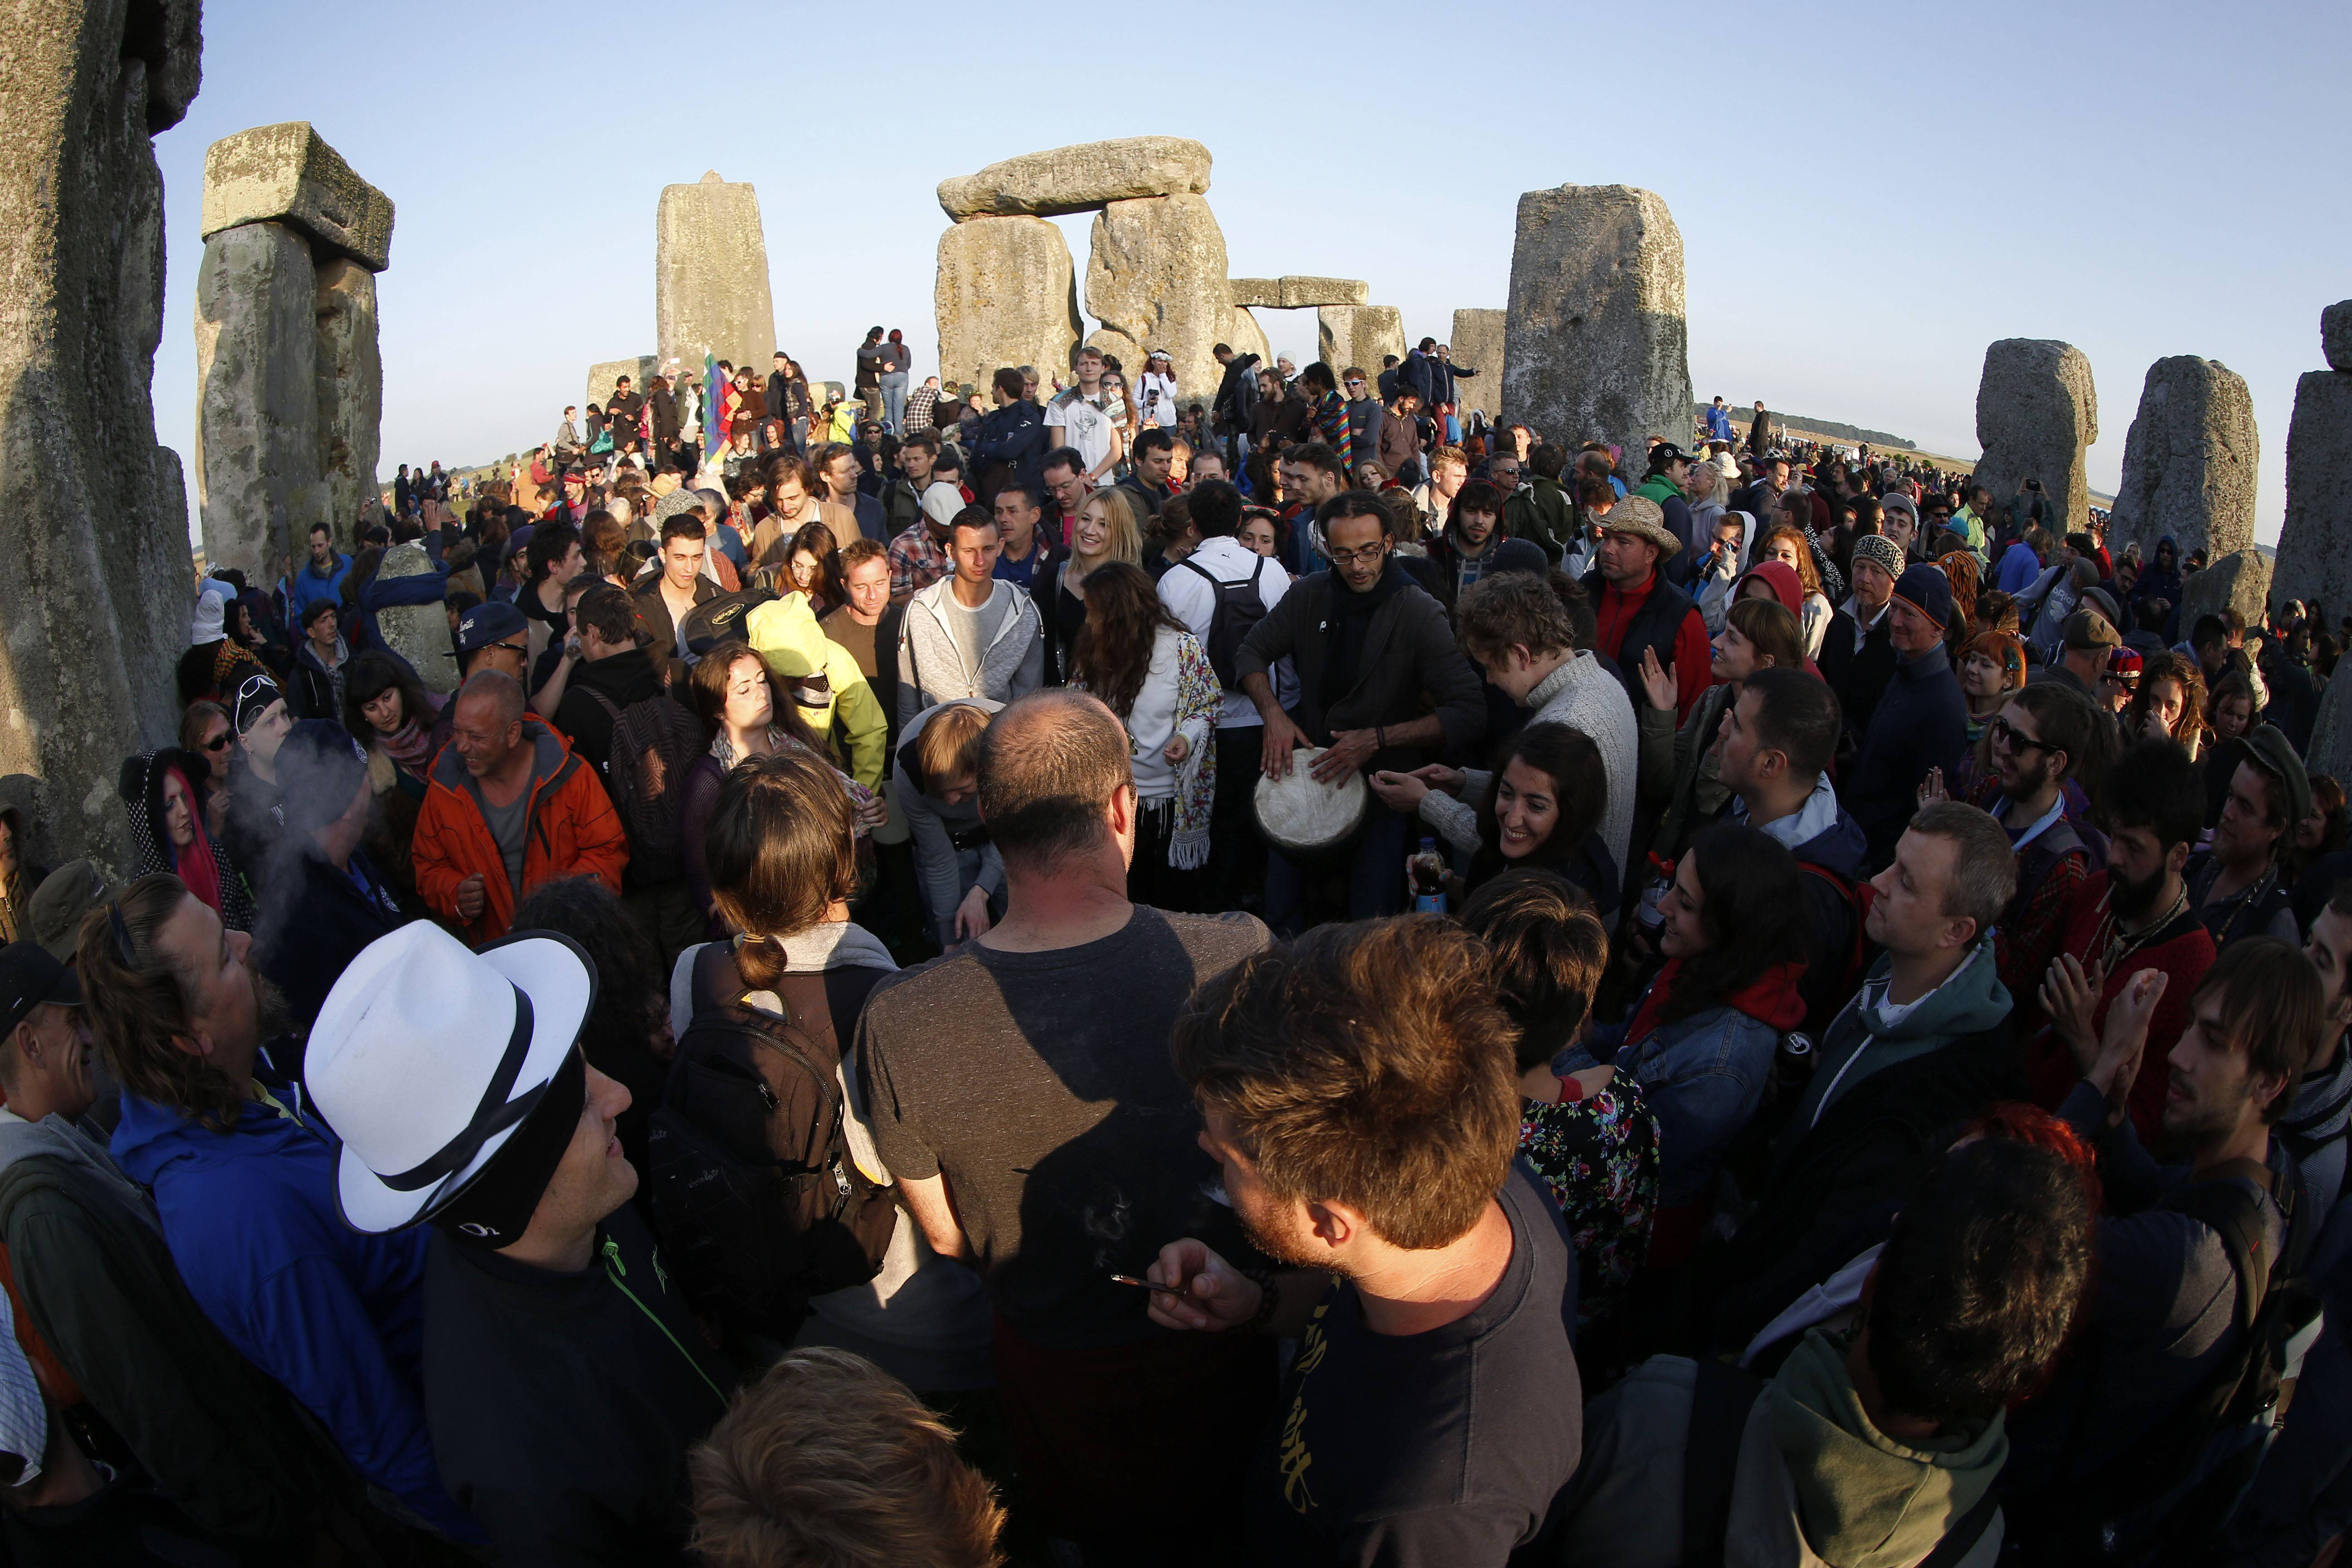 Thousands of revelers gathered at the ancient stone circle Stonehenge, near Salisbury, England, to celebrate the summer solstice, the longest day of the year, Saturday, June 21.